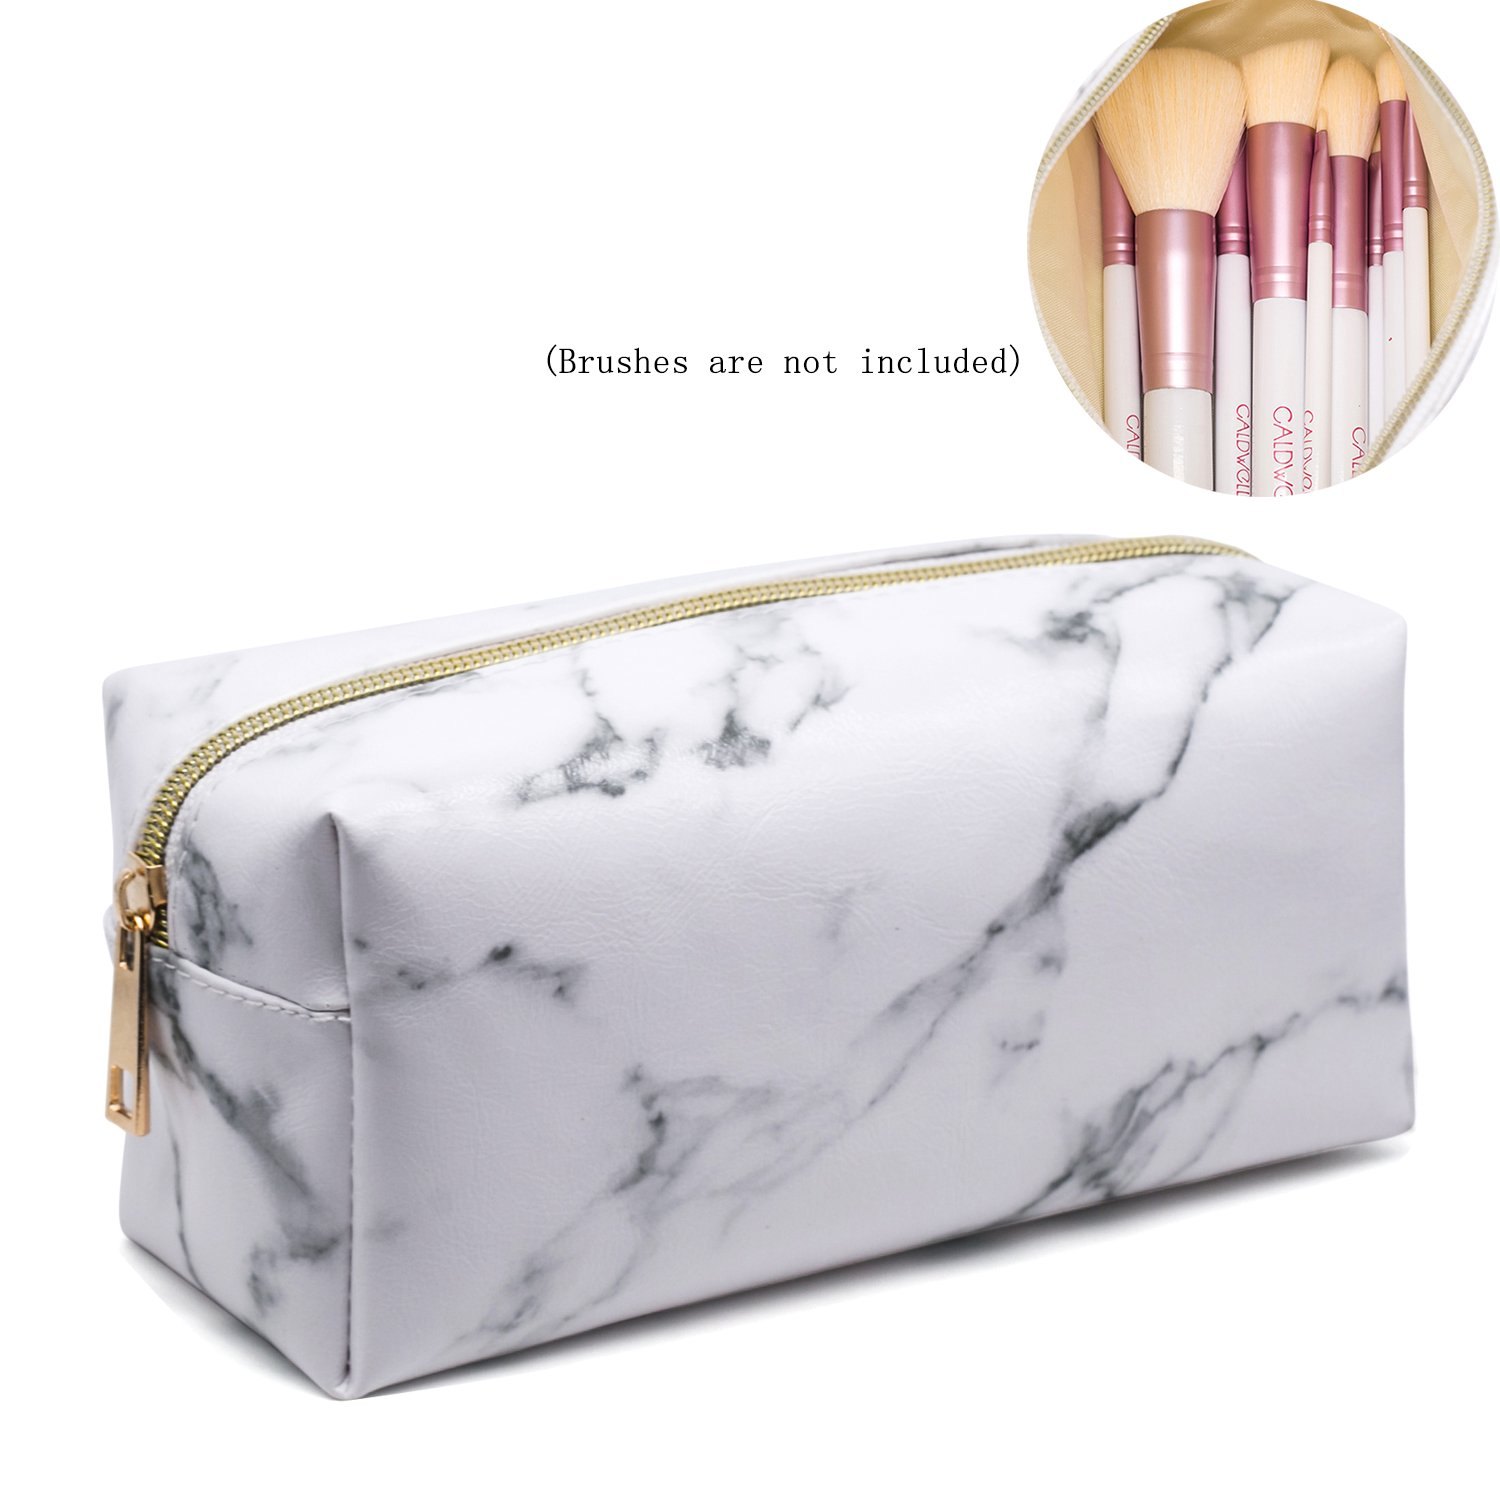 Marble Makeup Bag Organizer Portable Cosmetic Pouch Travel Brush Holder PU Handbag with Gold Zipper Pencil Storage Case for Women Purse,White (7.5''x3.5''x2.8'')